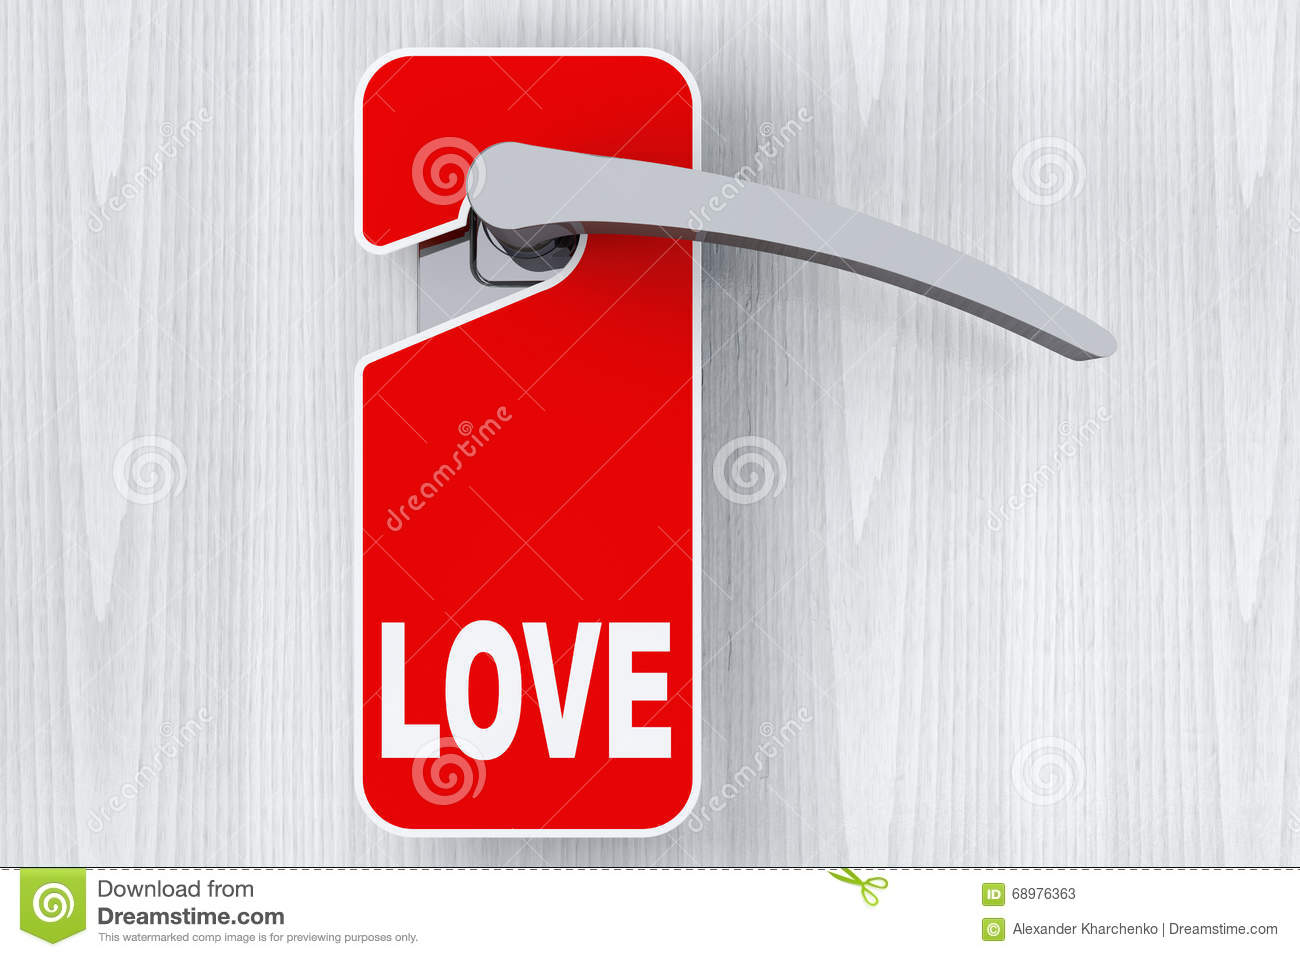 Door with Do Not Disturb Tag and Love sign  sc 1 st  Dreamstime.com & Door With Do Not Disturb Tag And Love Sign Stock Image - Image of ...